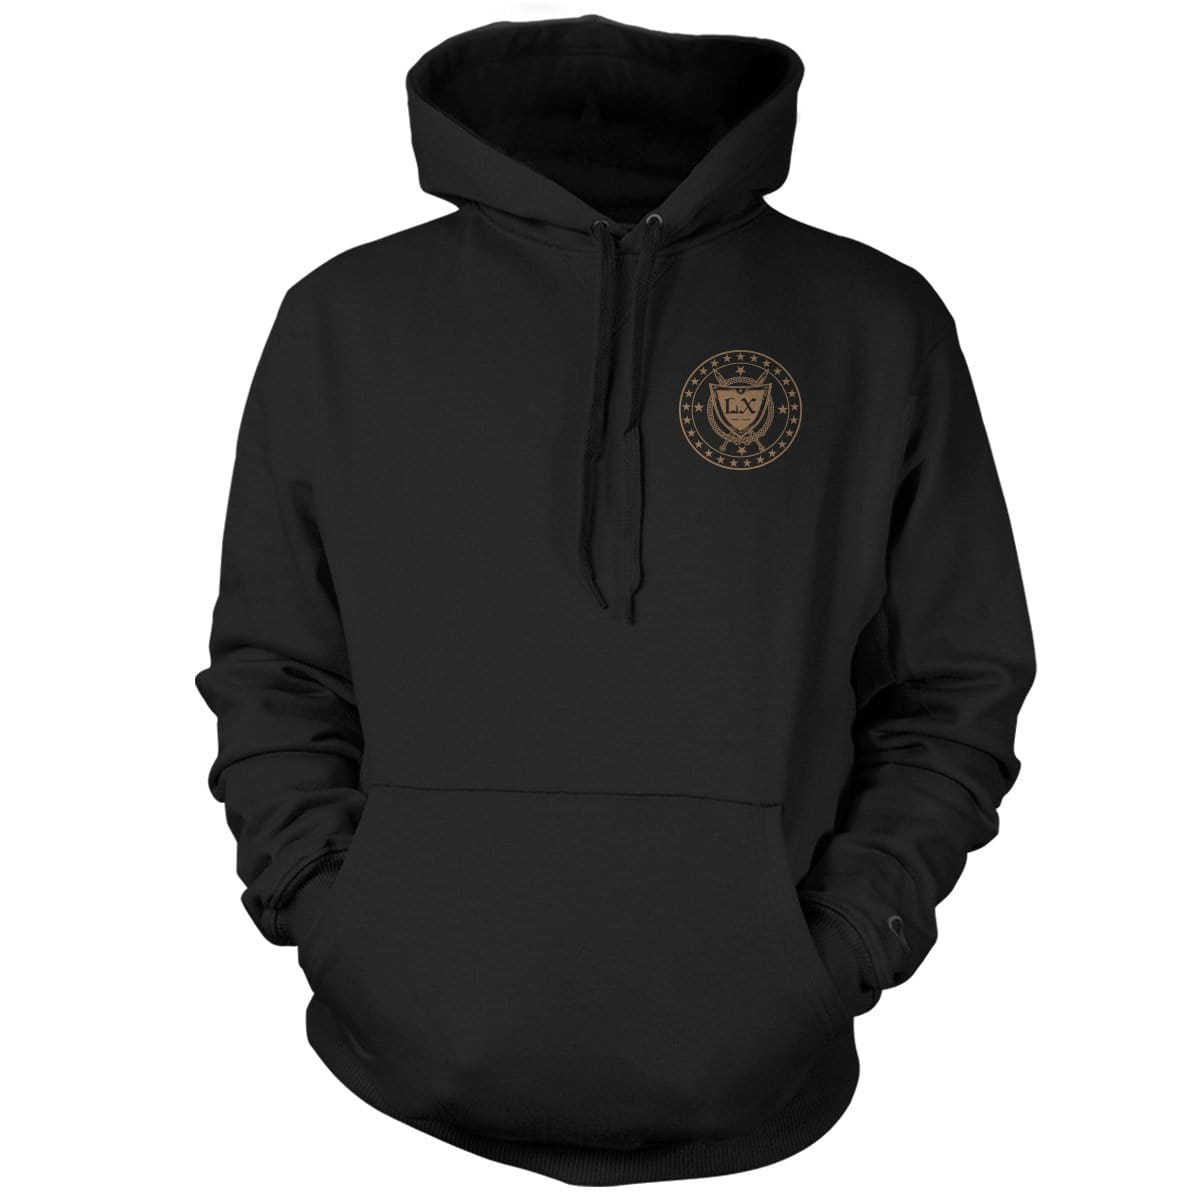 PHUMC Alewar Chapter Hoodie - Pipe Hitters Union